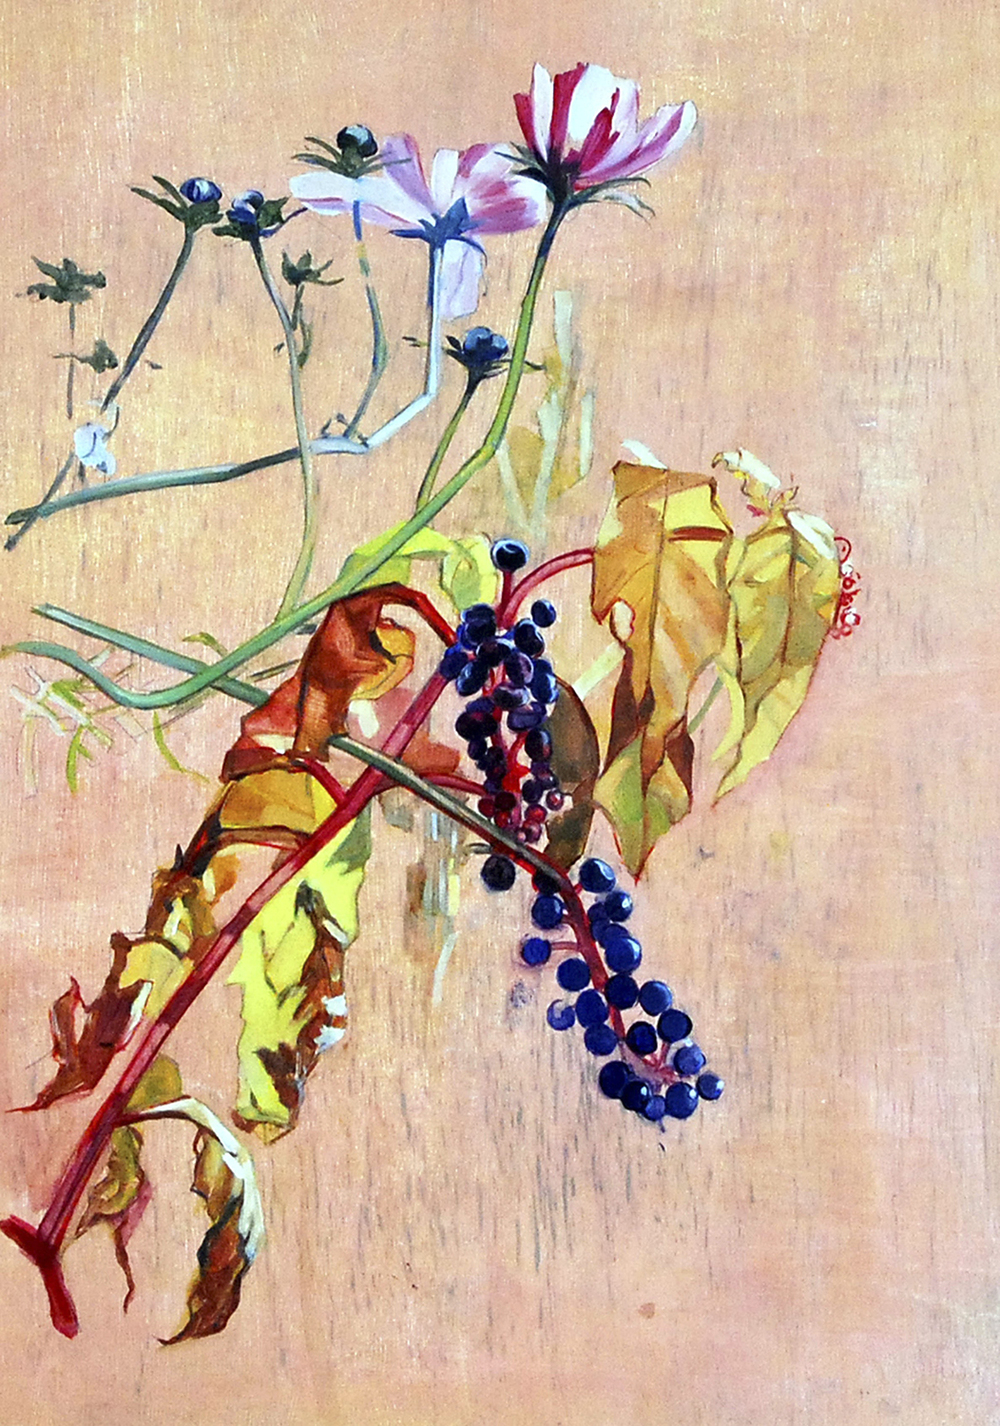 Fall Flowers oil on paper 17x12, 2006 *